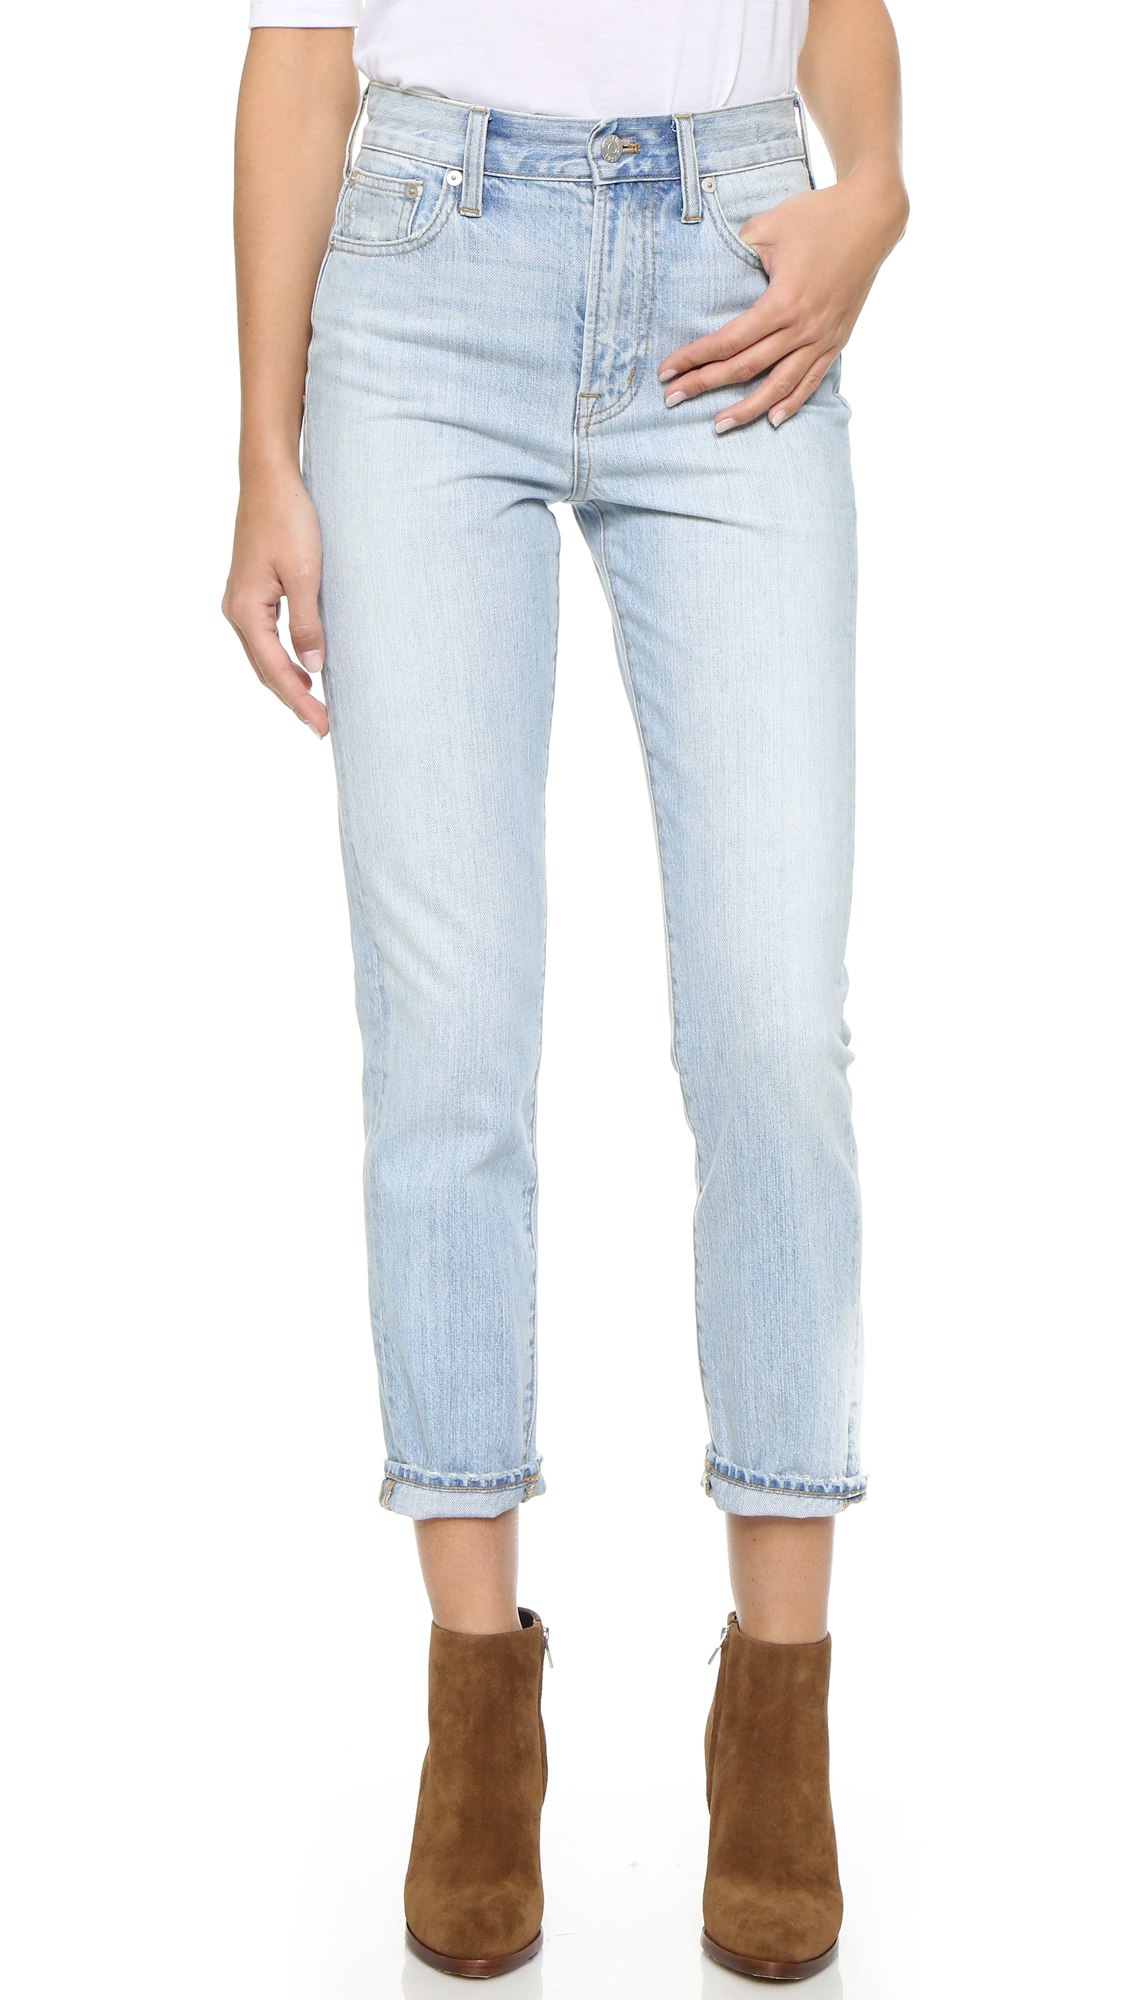 Madewell Perfect Summer Jeans In Fitzgerald Wash